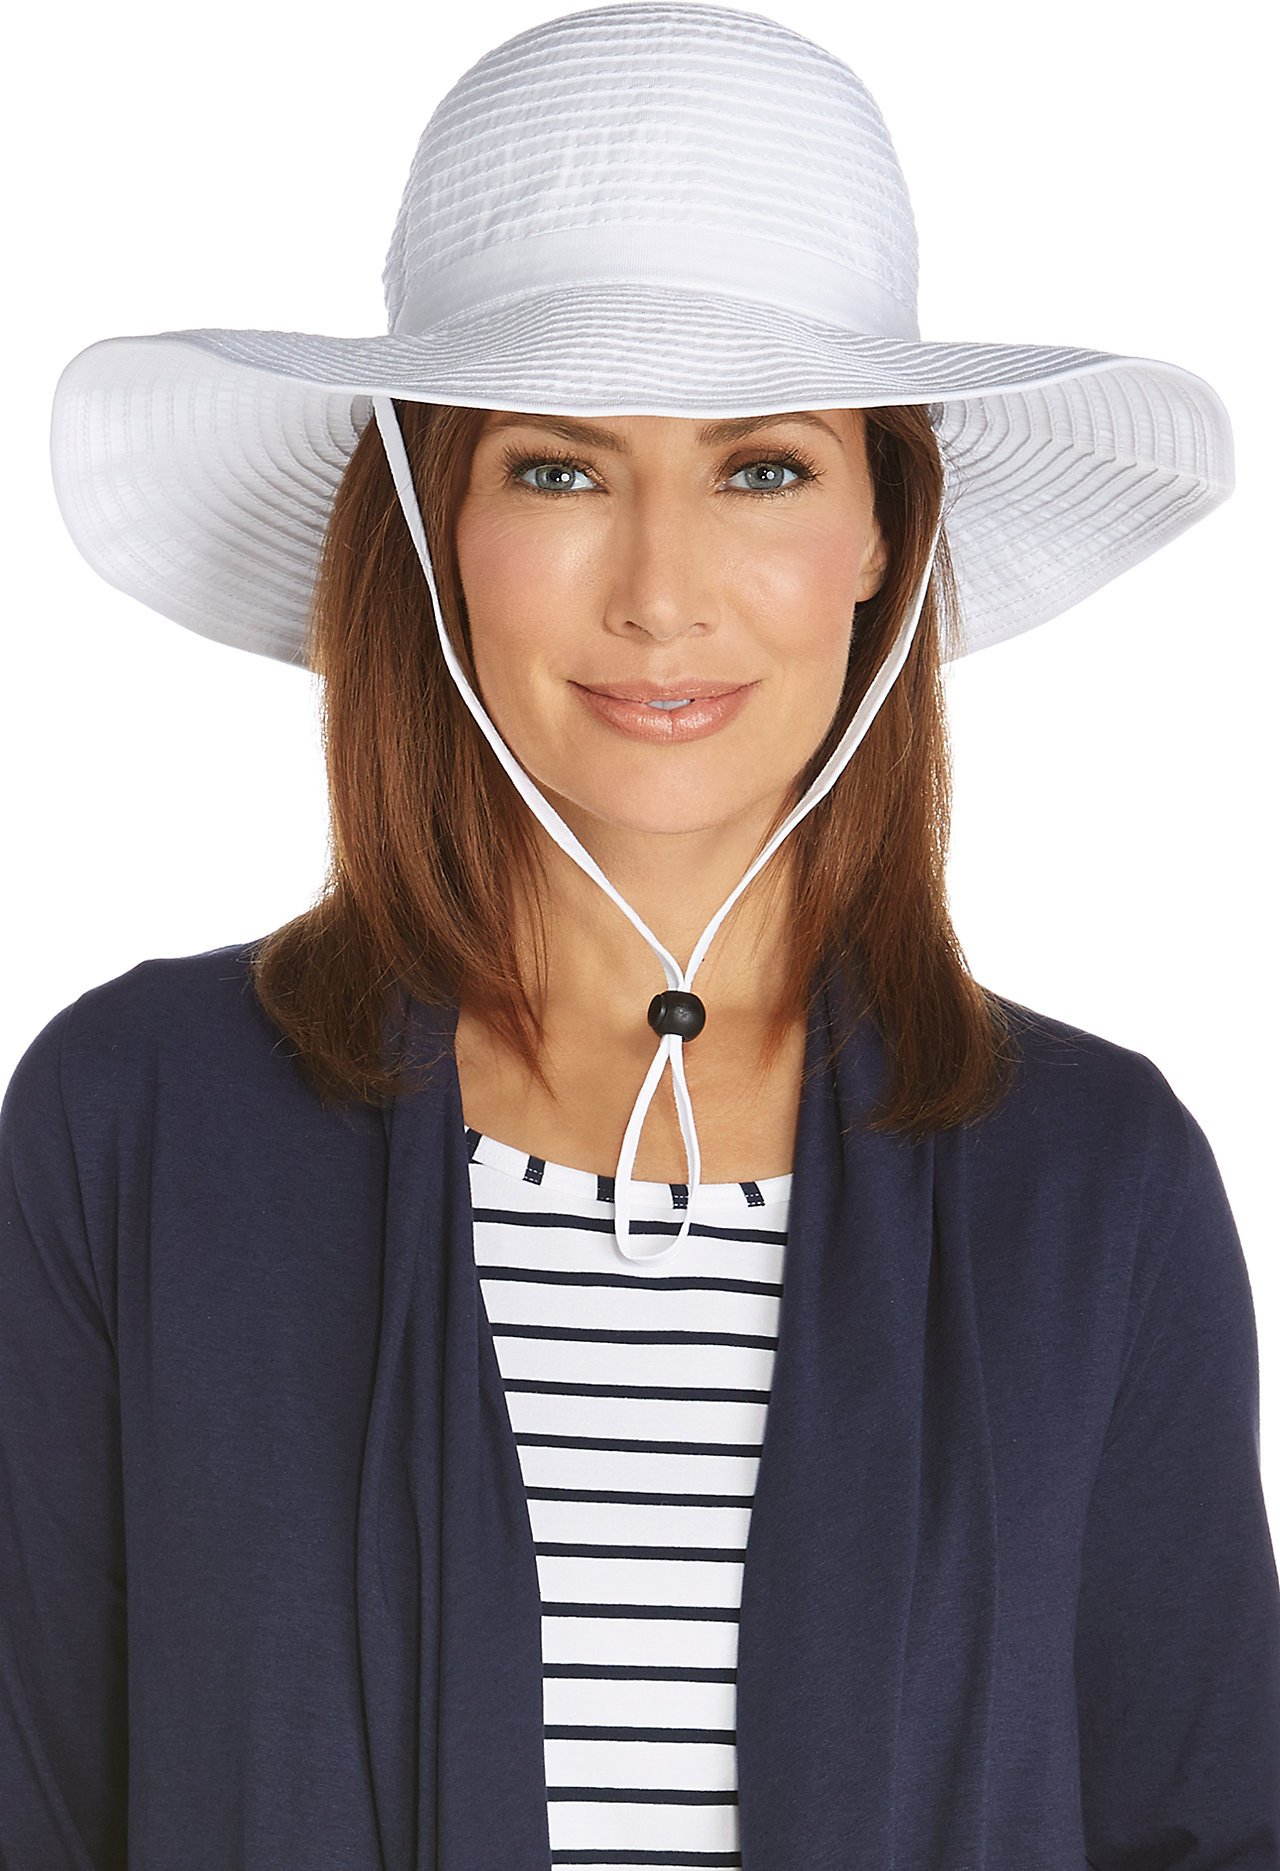 Coolibar UPF 50+ Women's Shapeable Travel Sun Hat - Sun Protective (One Size- White)